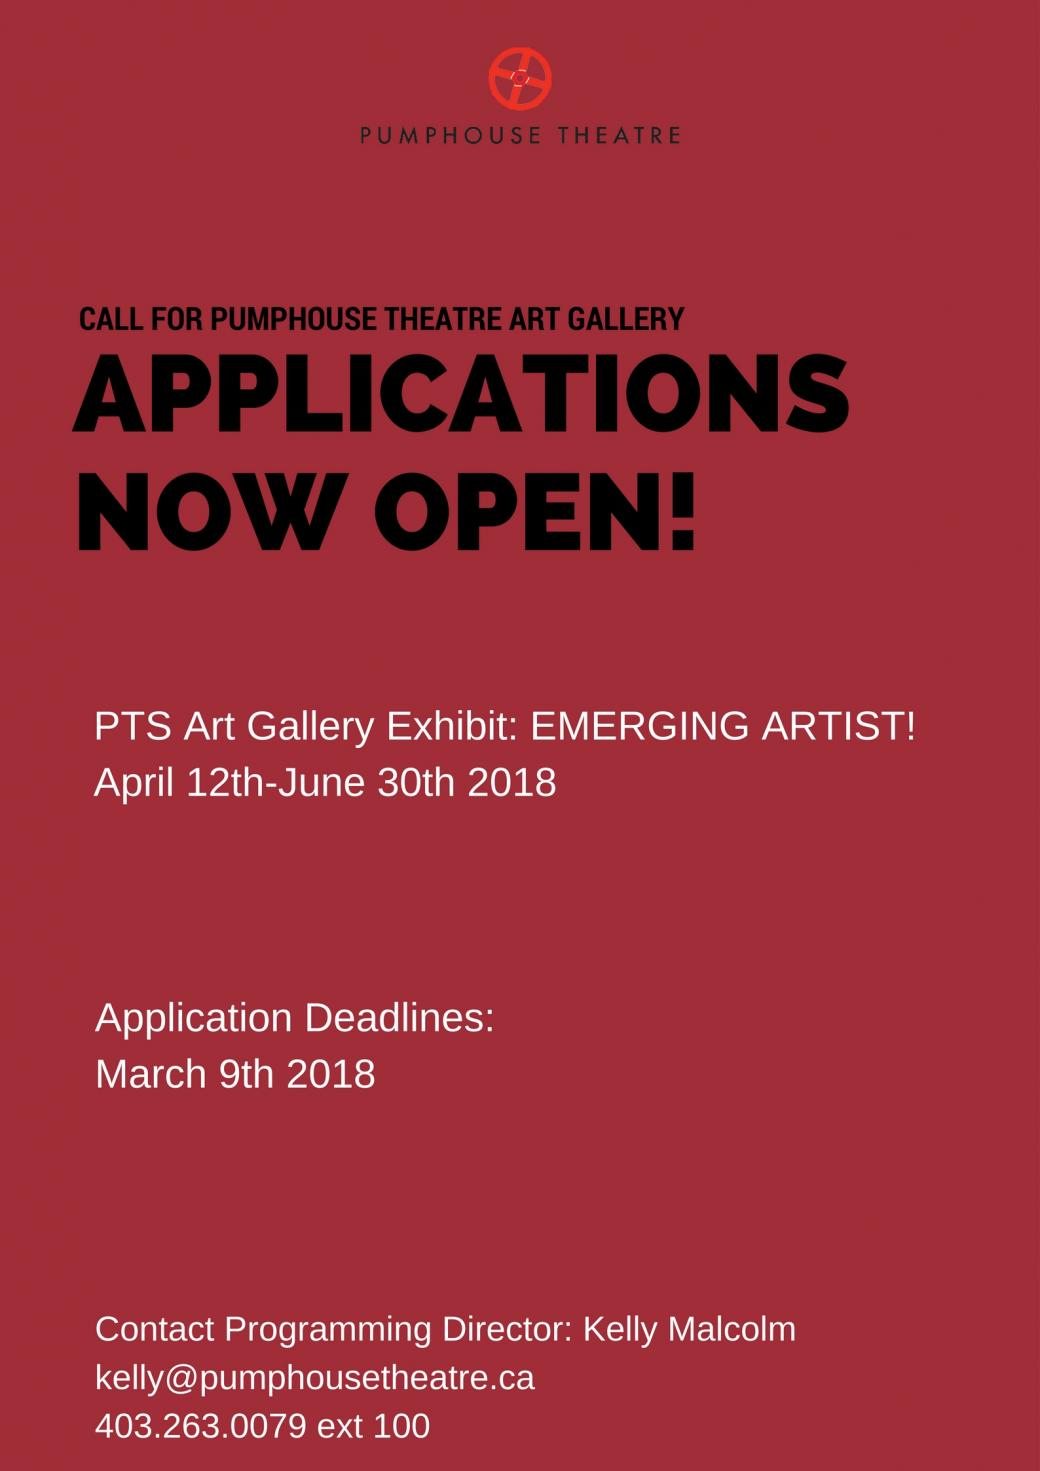 Pumphouse Theatre Lobby Art Gallery: Submissions Now Open!